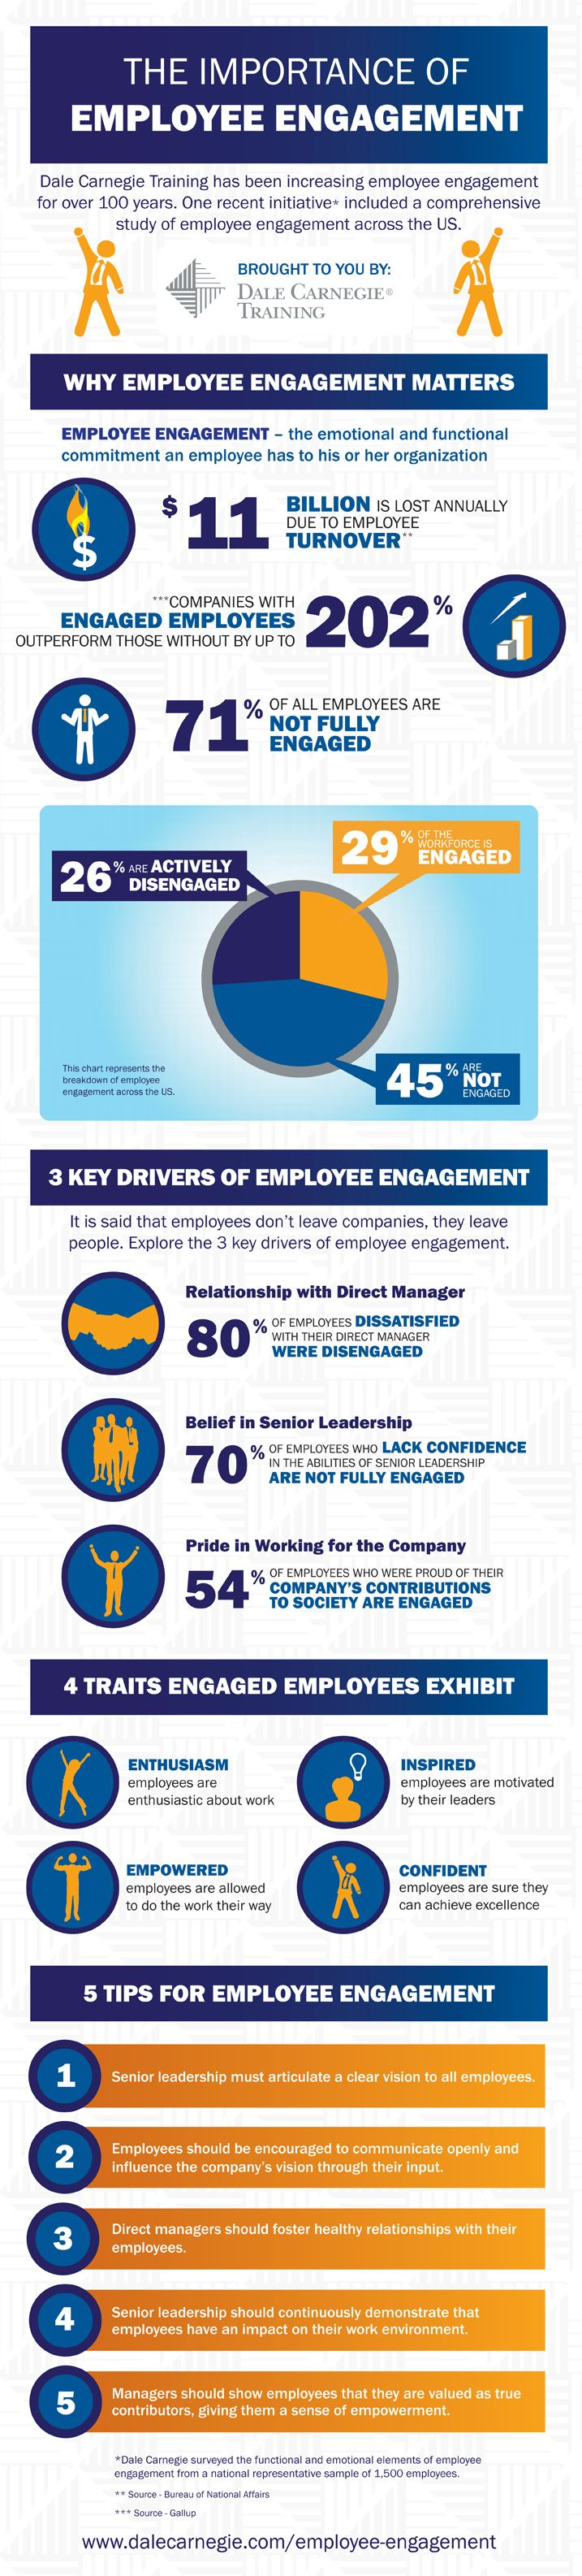 Engaged Employees Infographic via Dale Carnegie. Some startling employee engagement statistics revealed in this study showed that 29% of the workforce is engaged, 45% are not engaged, and 26% are actively disengaged